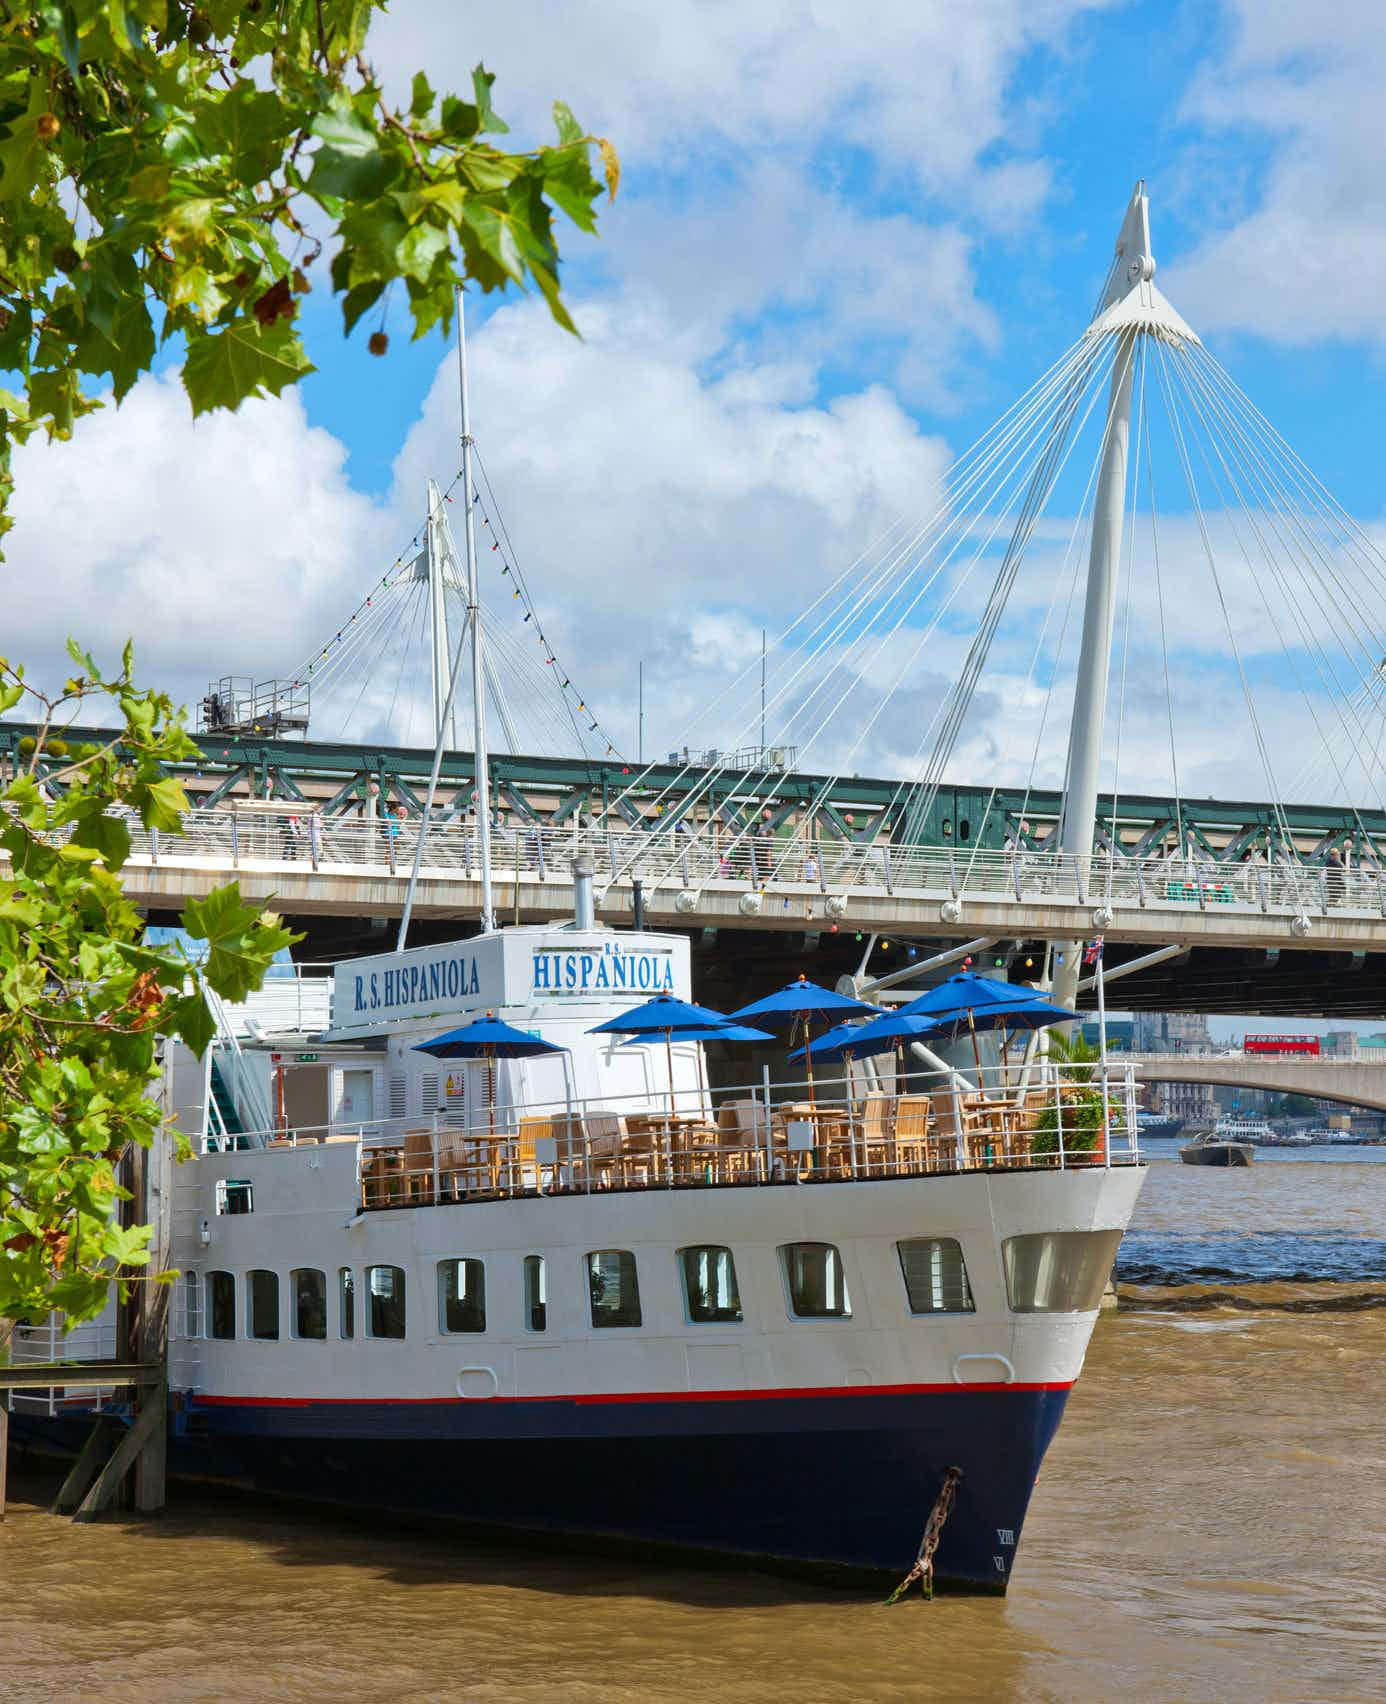 Boat Hire, R.S. Hispaniola